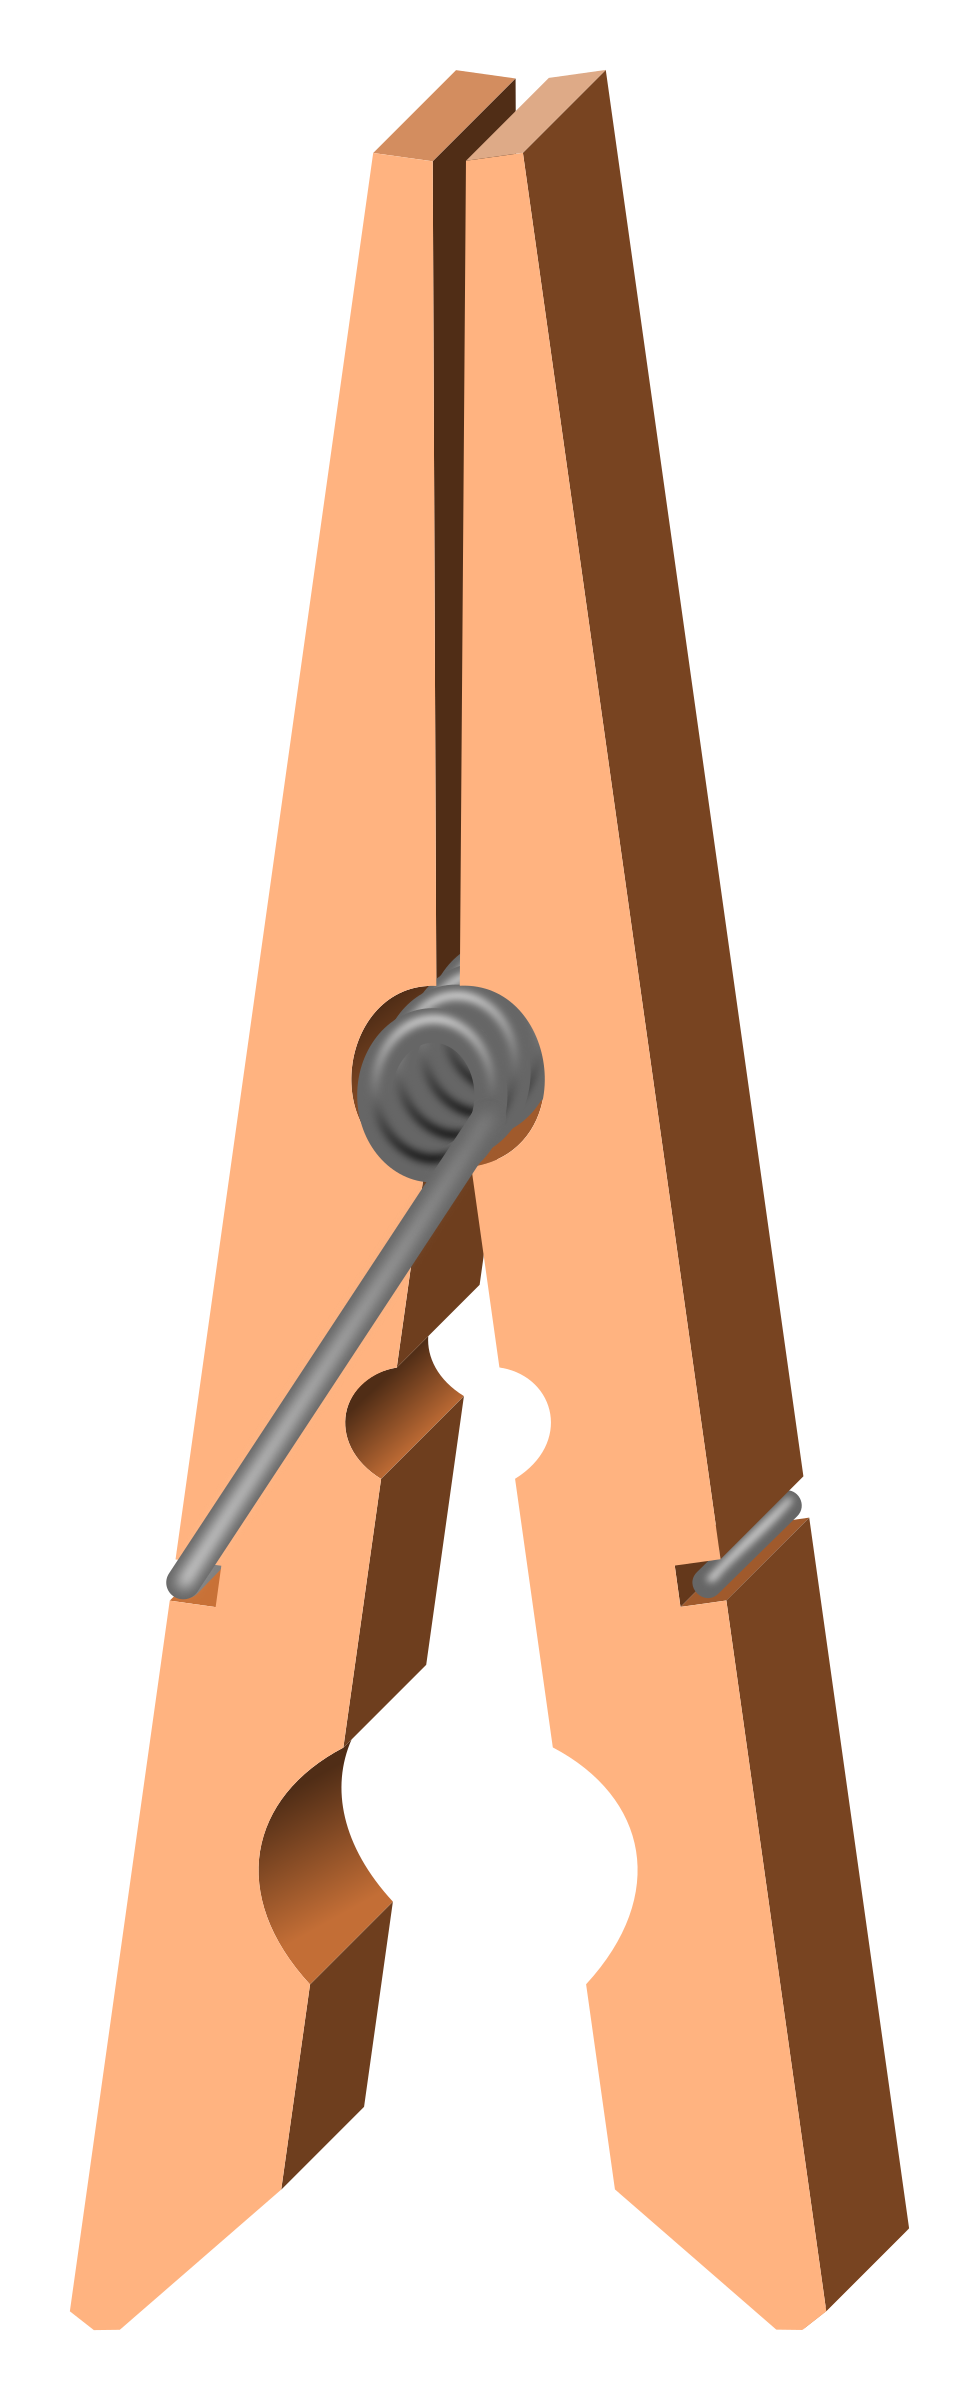 Pins clipart clothespin. Clothes peg open big